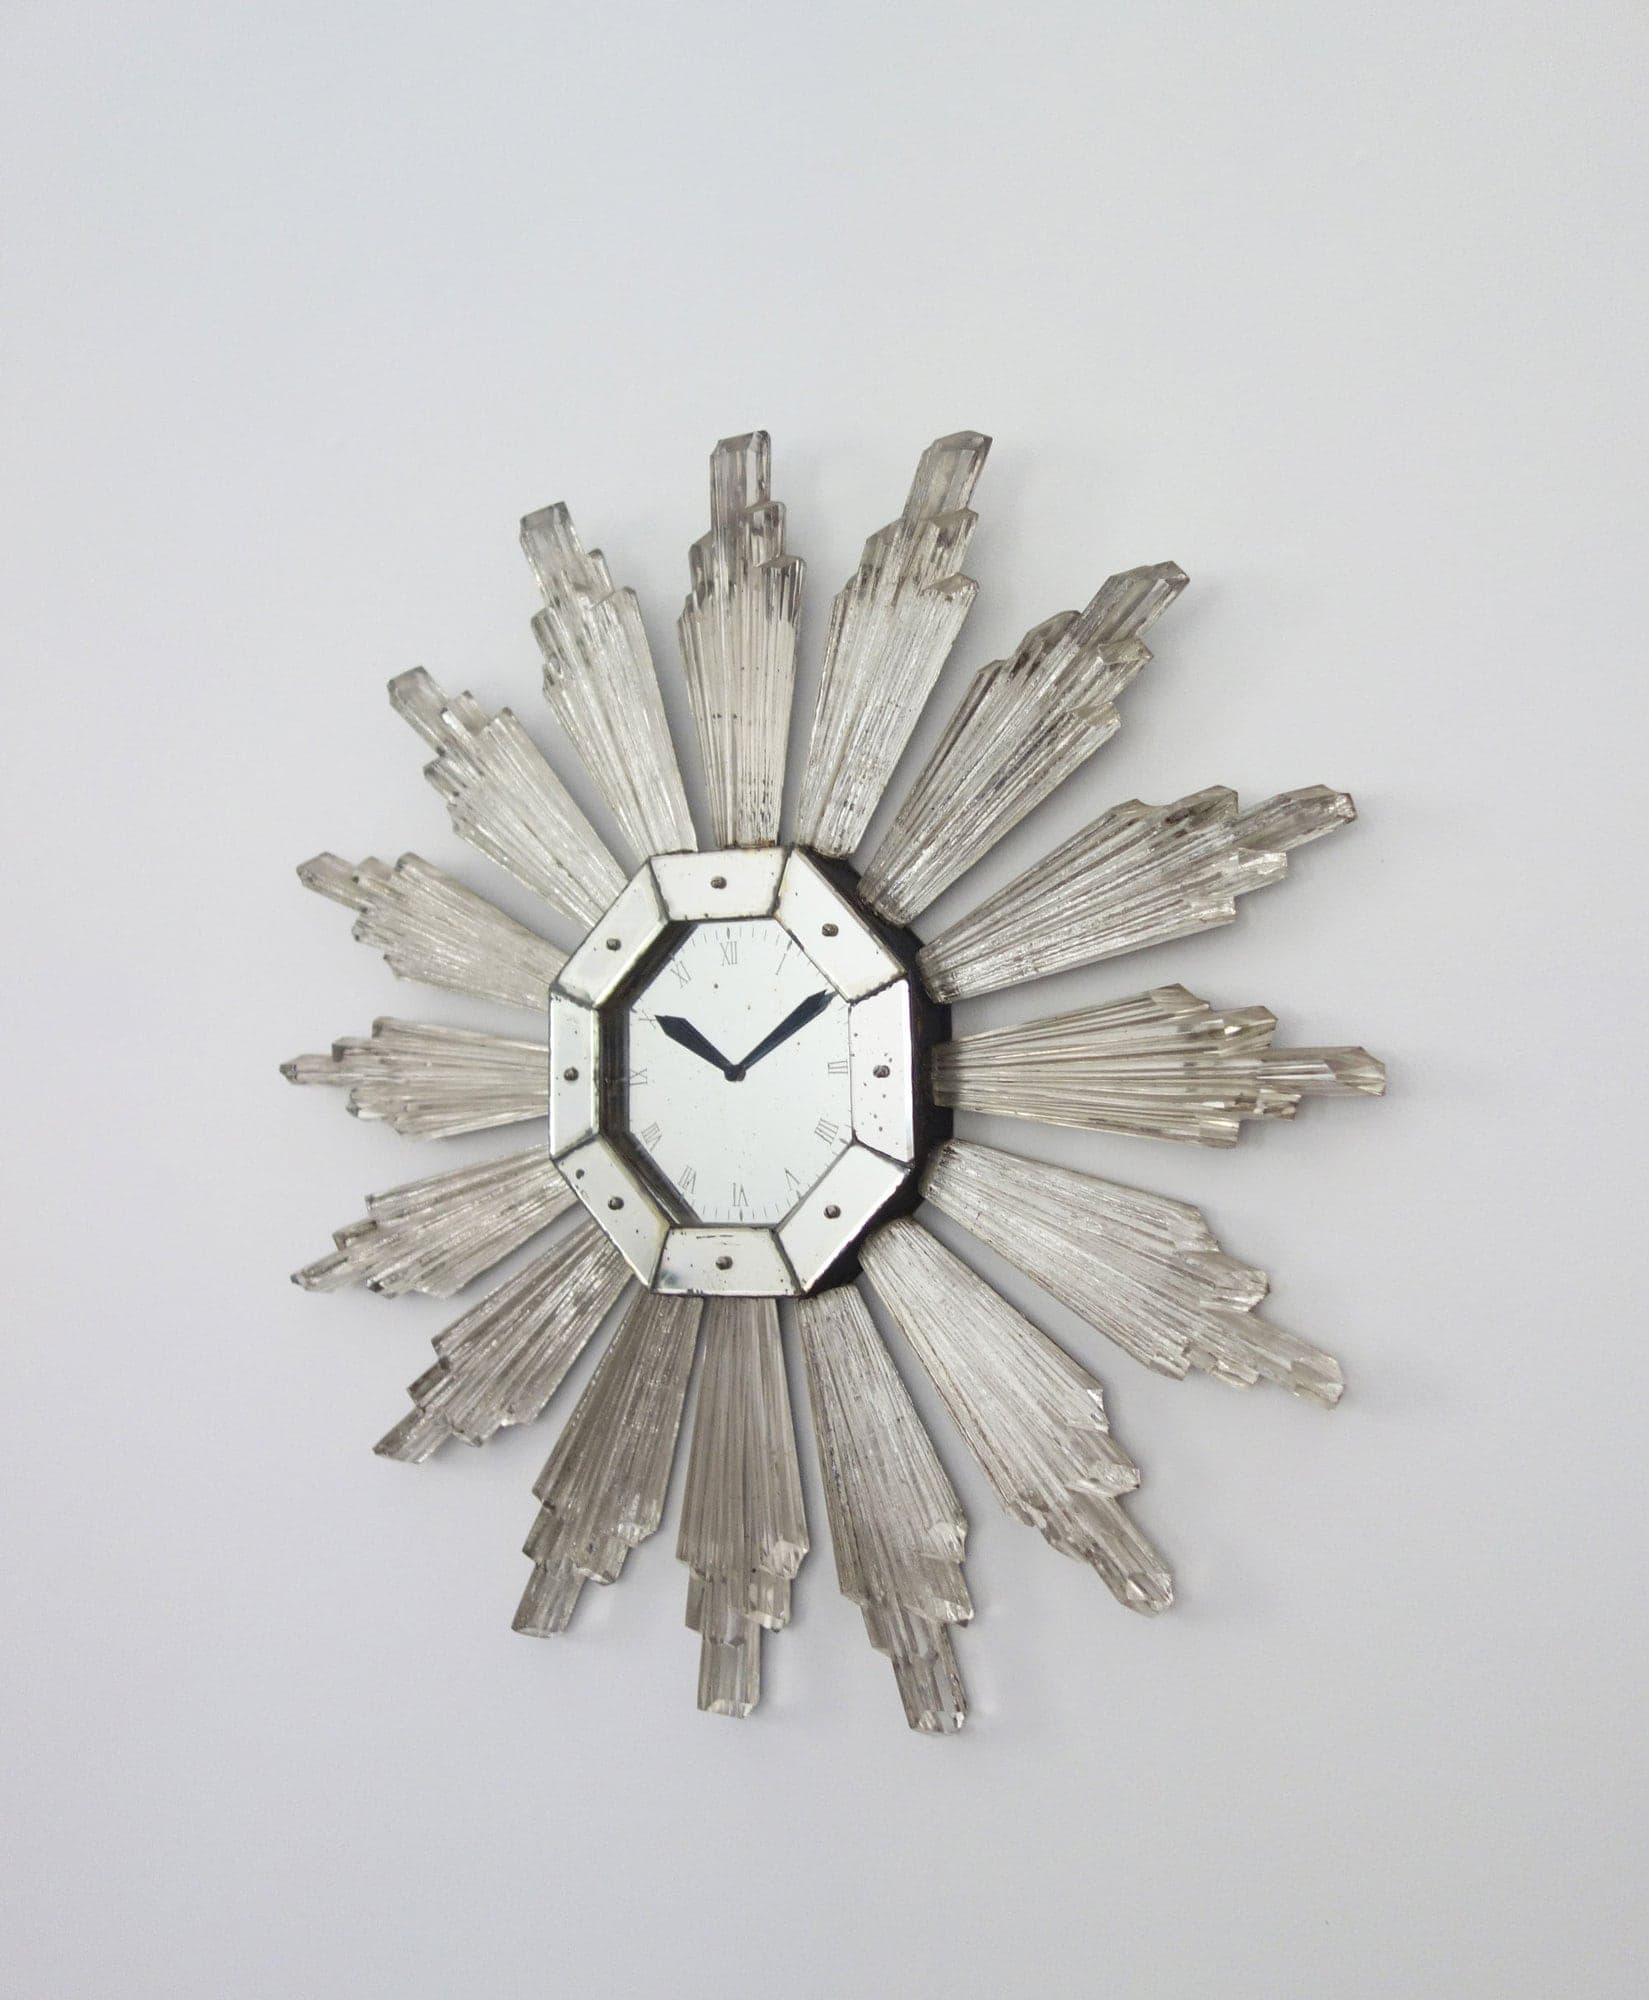 Serge Roche, Very rare wall clock (sold), vue 02